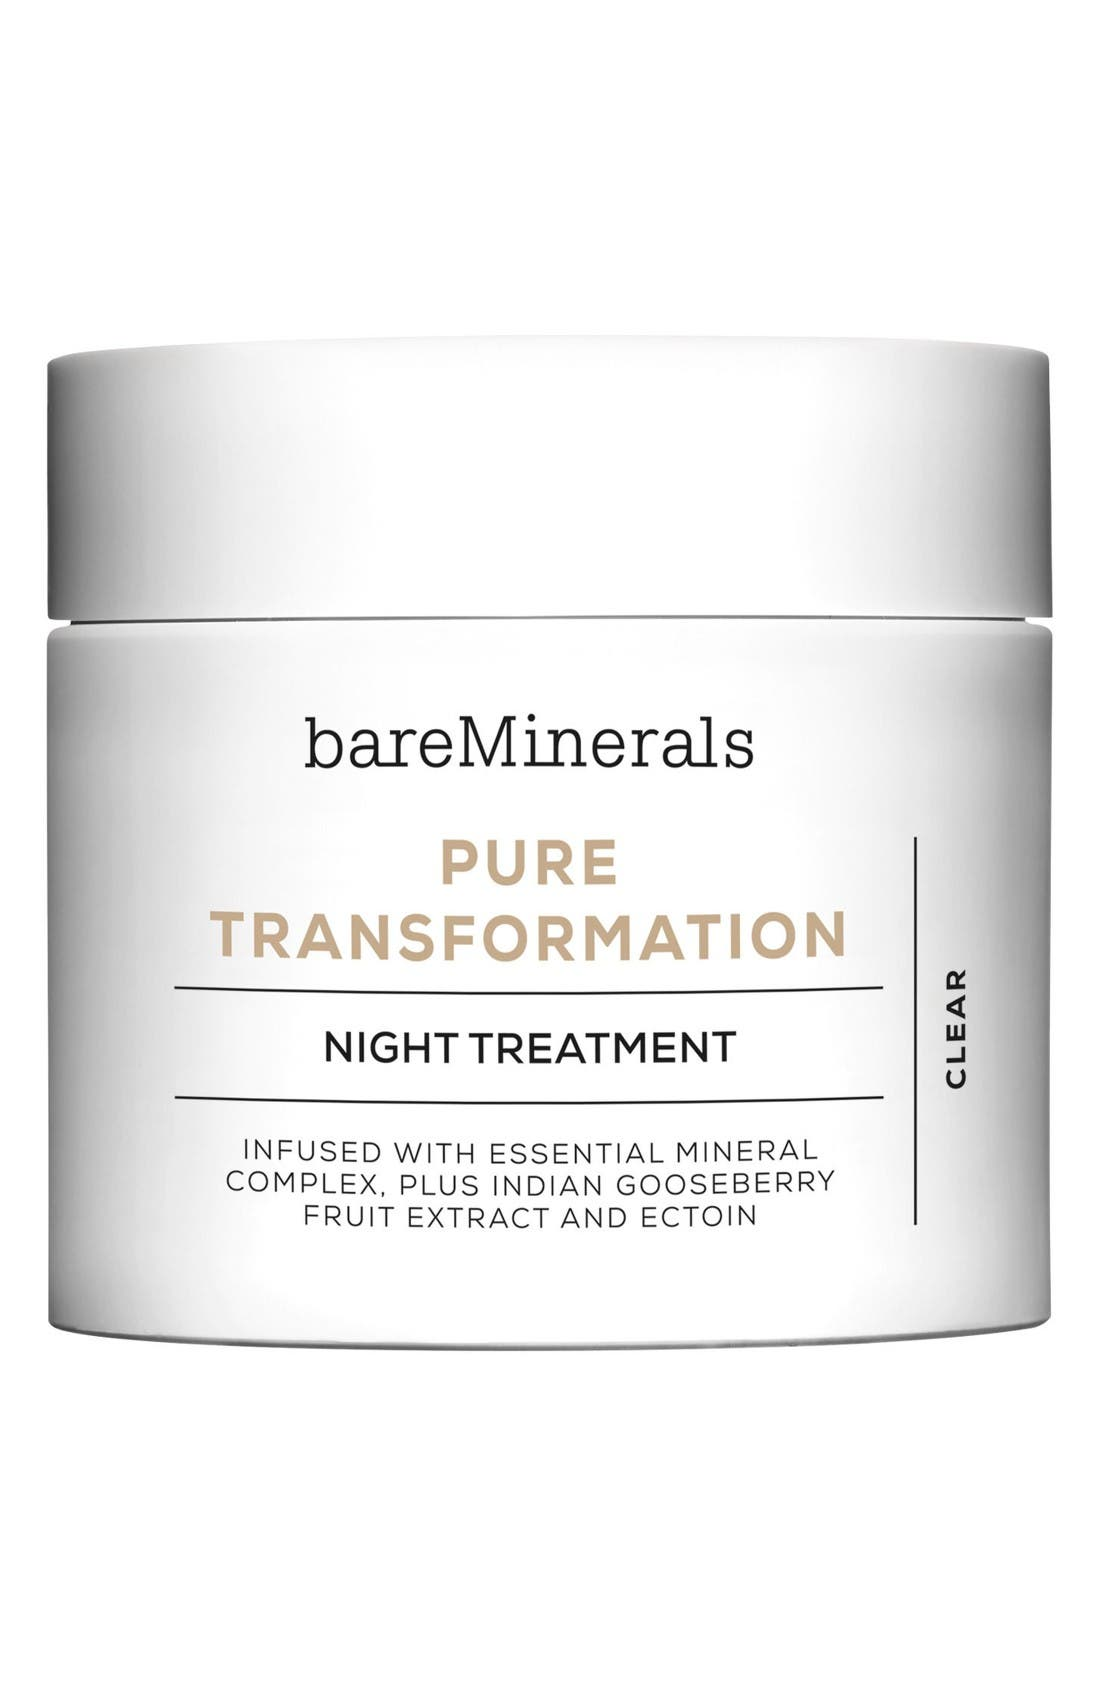 bareMinerals® Skinsorials Pure Transformation Night Treatment